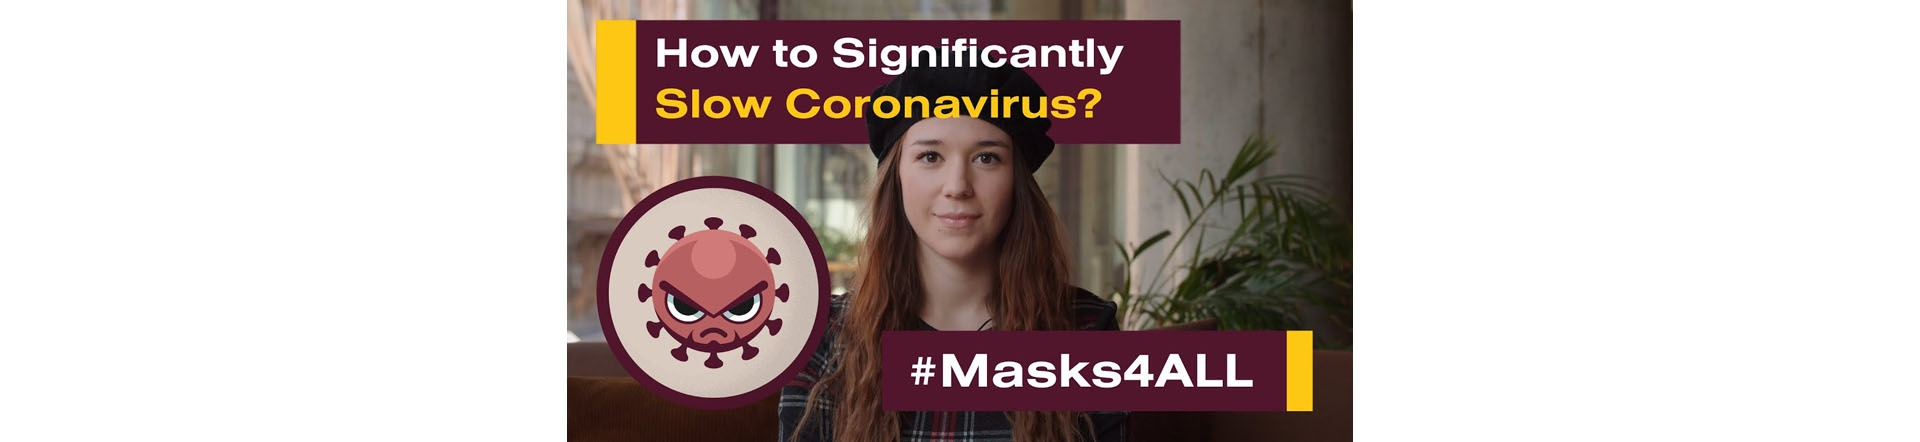 How to Significantly Slow Coronavirus?